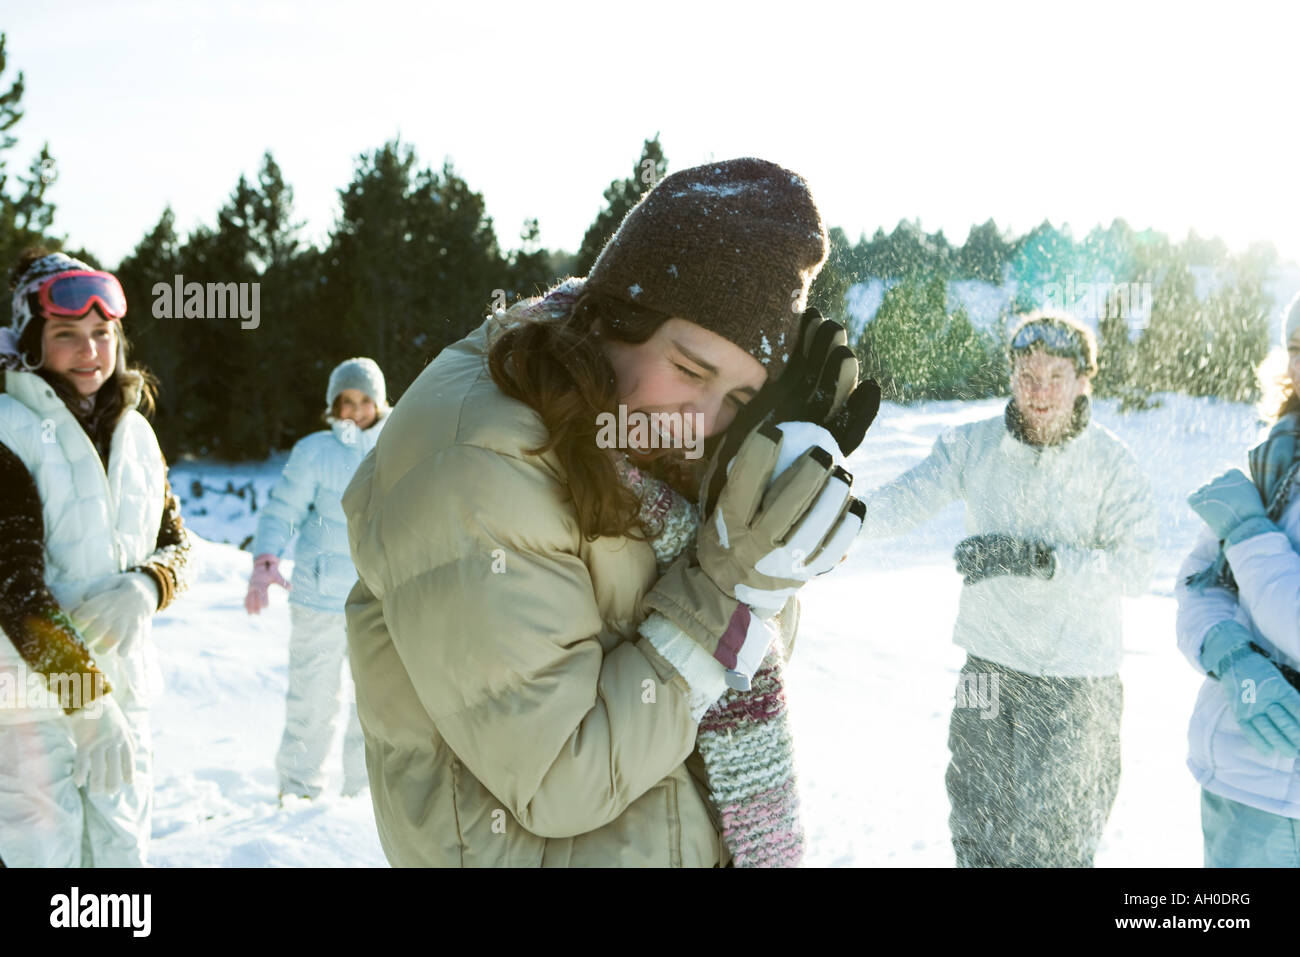 Young friends throwing snowballs, smiling, blurred motion Stock Photo